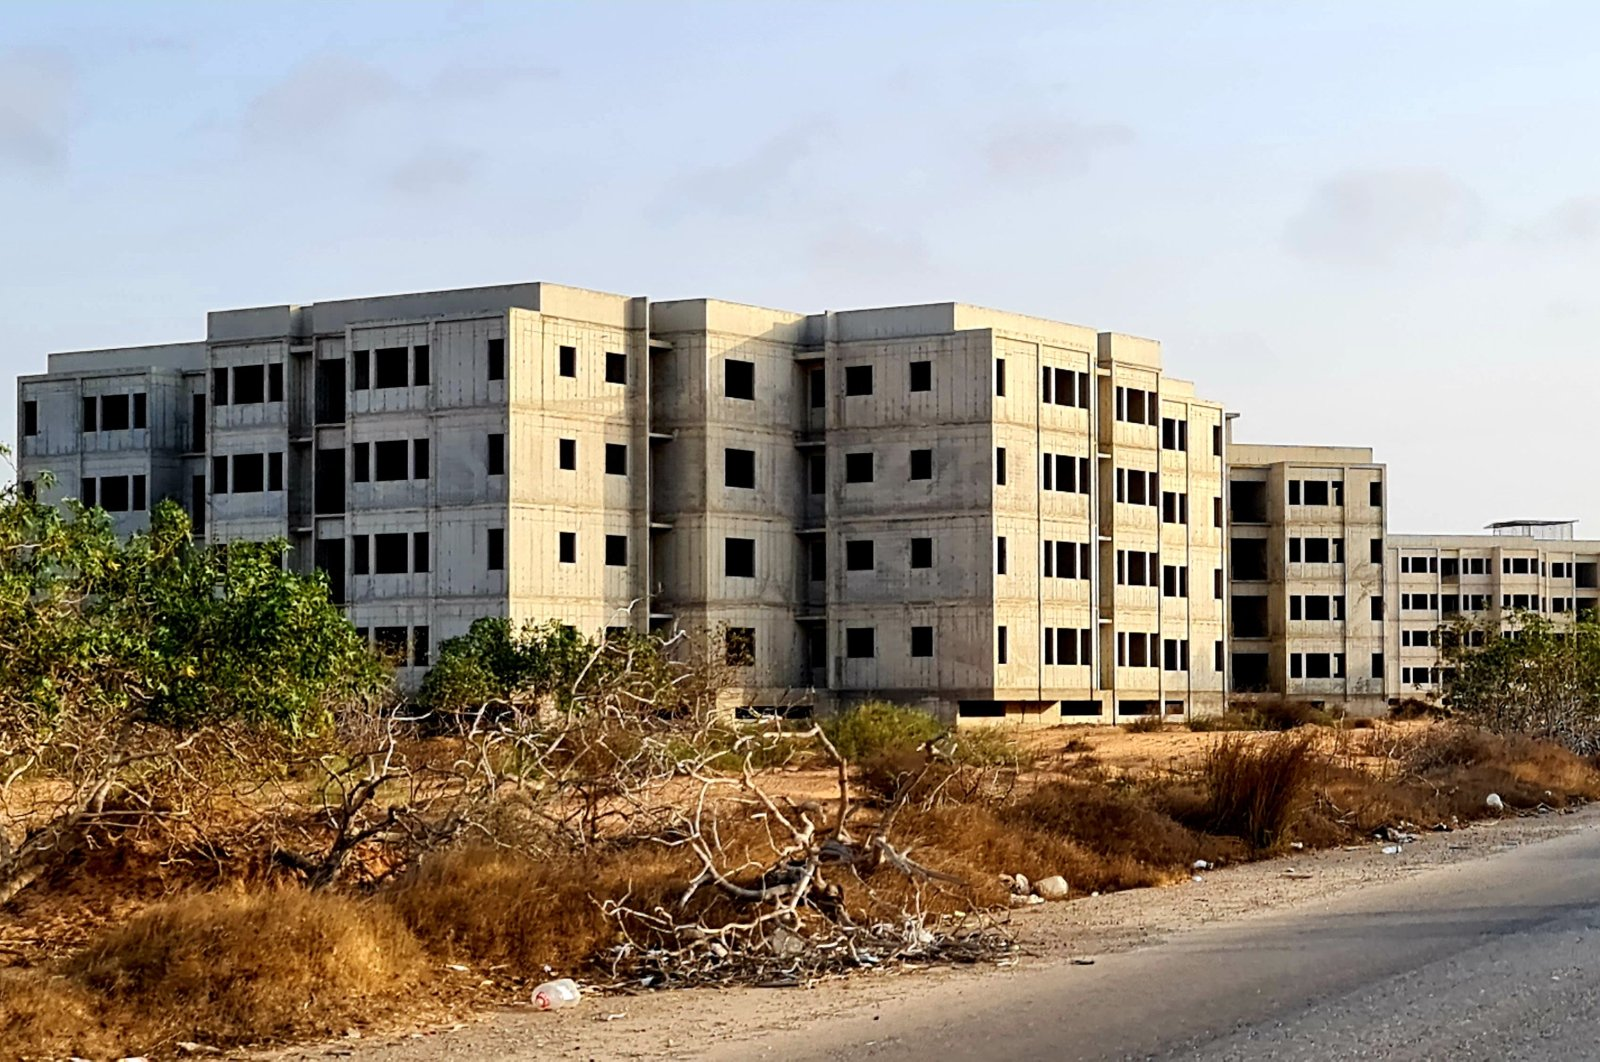 A picture taken Aug. 13, 2021, shows unfinished residential buildings after their construction was halted in 2011, in the coastal city of Tajura, east of the capital Tripoli, Libya. (AFP Photo)